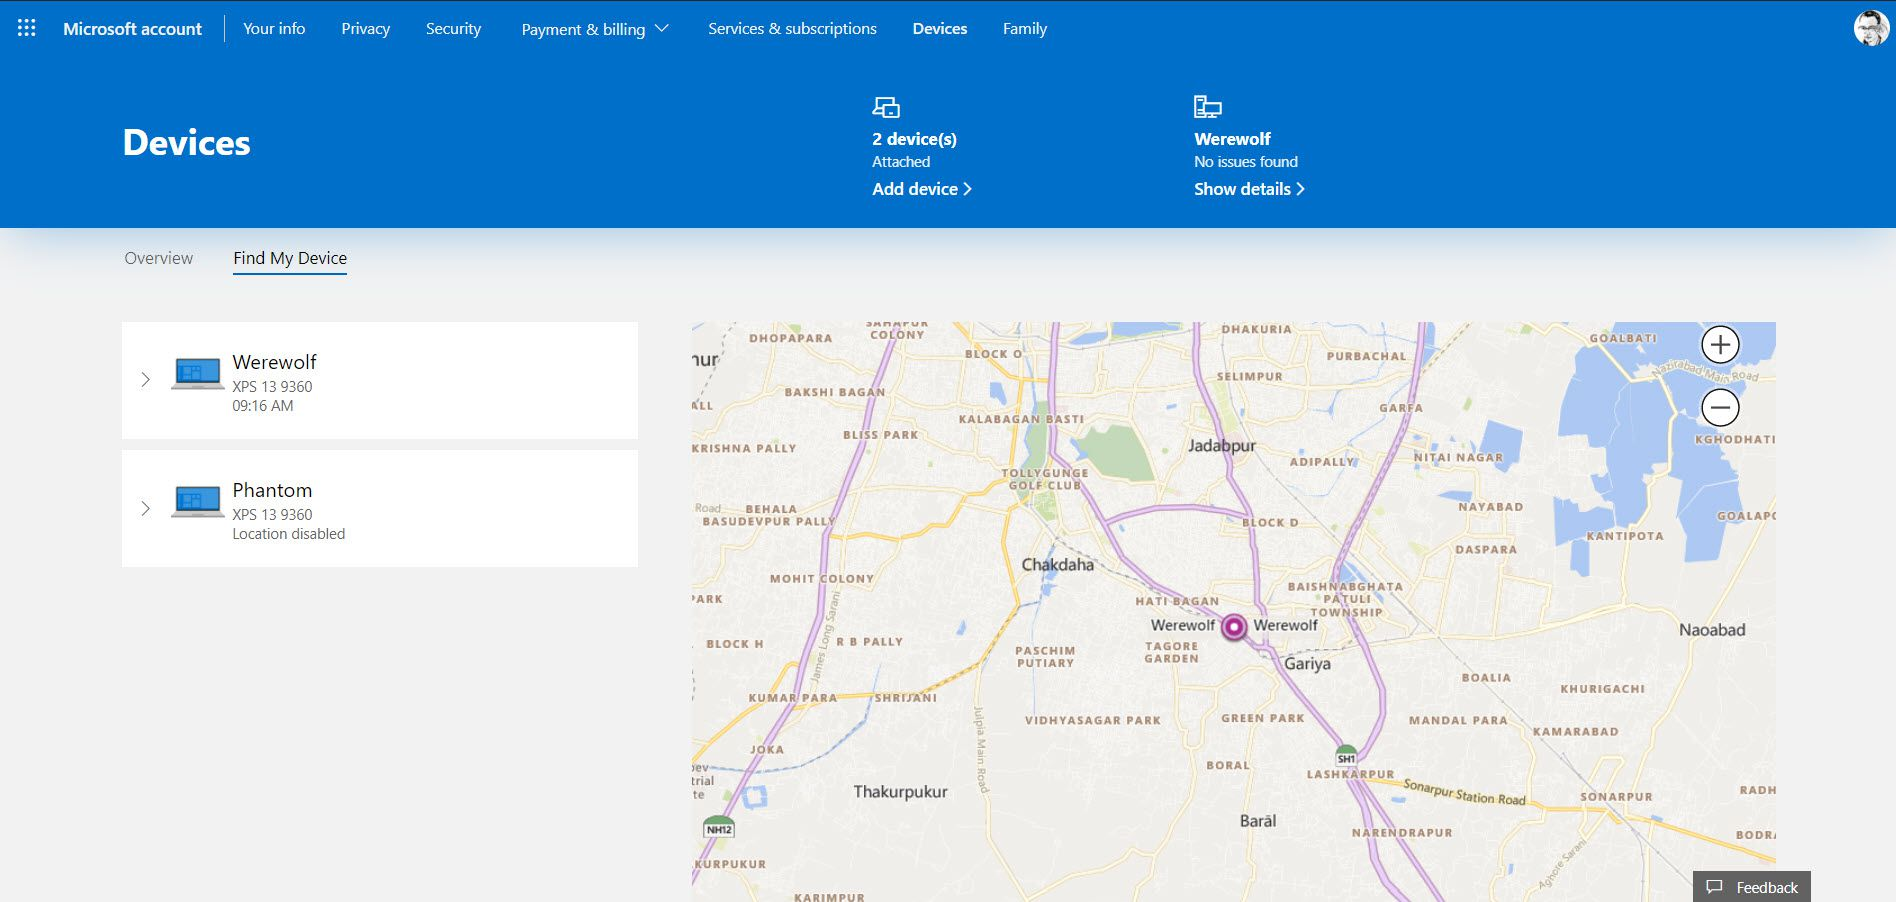 Microsoft account page with Find My Device